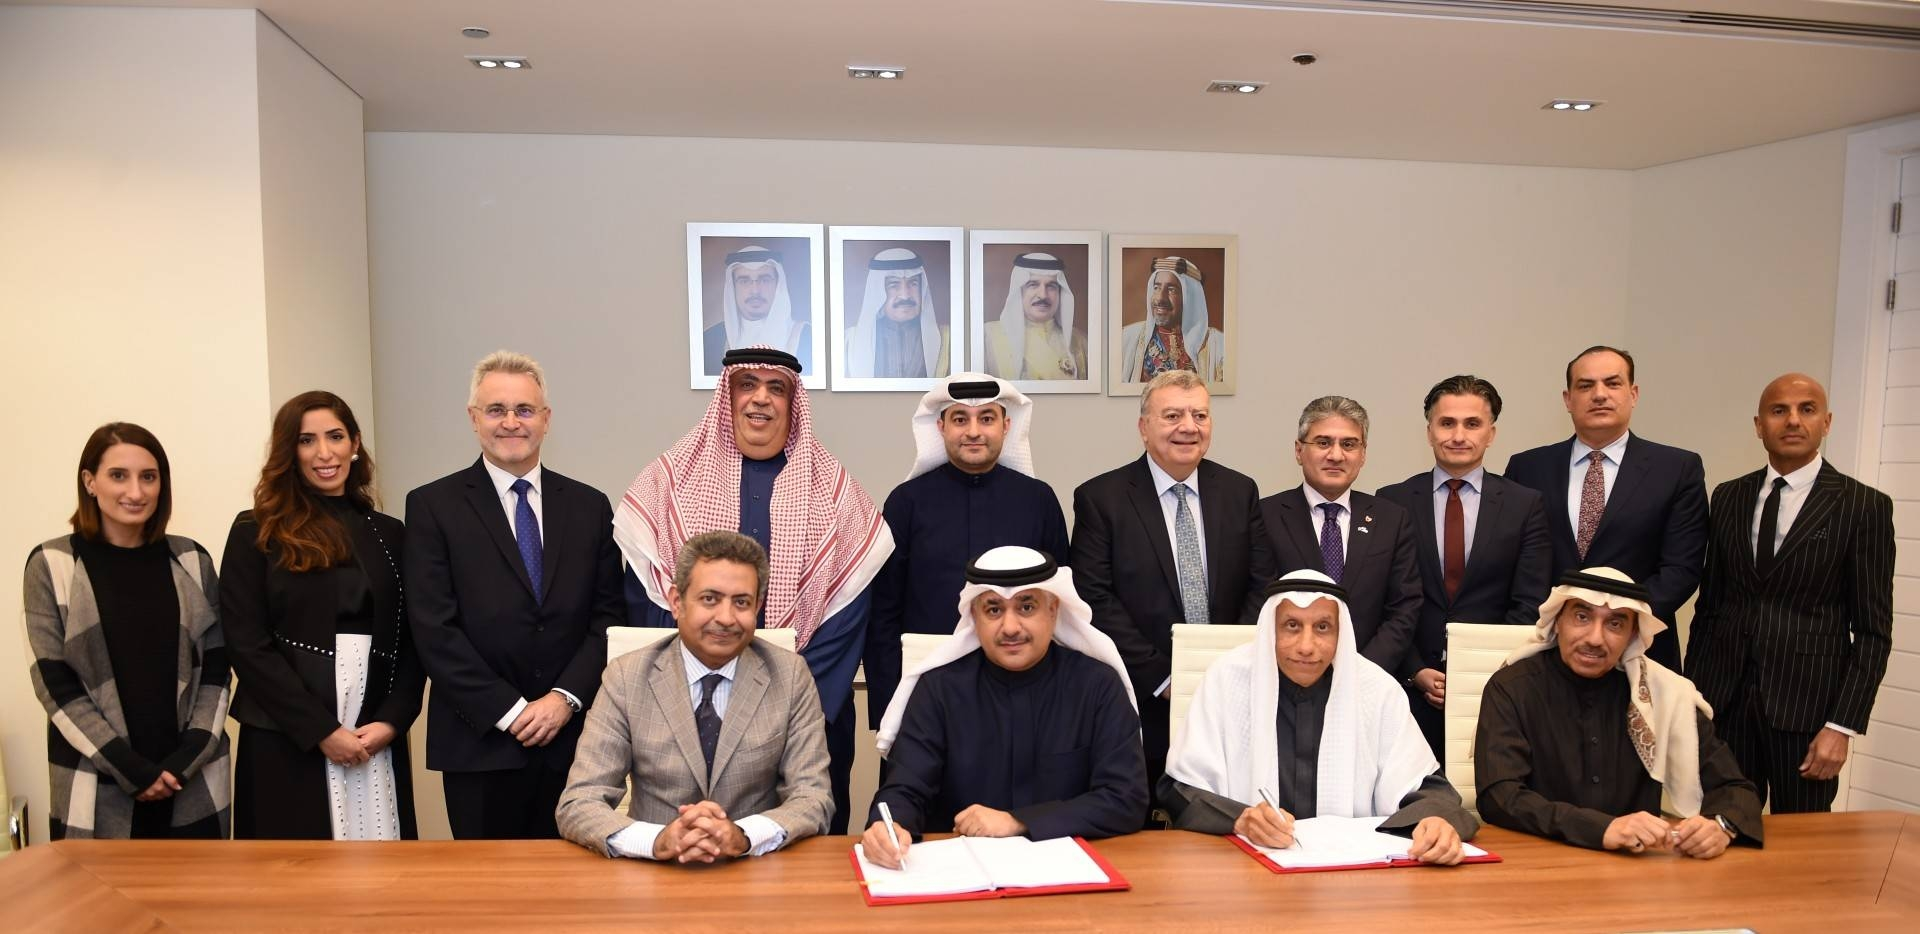 Officials of signatory companies pose for a group photo